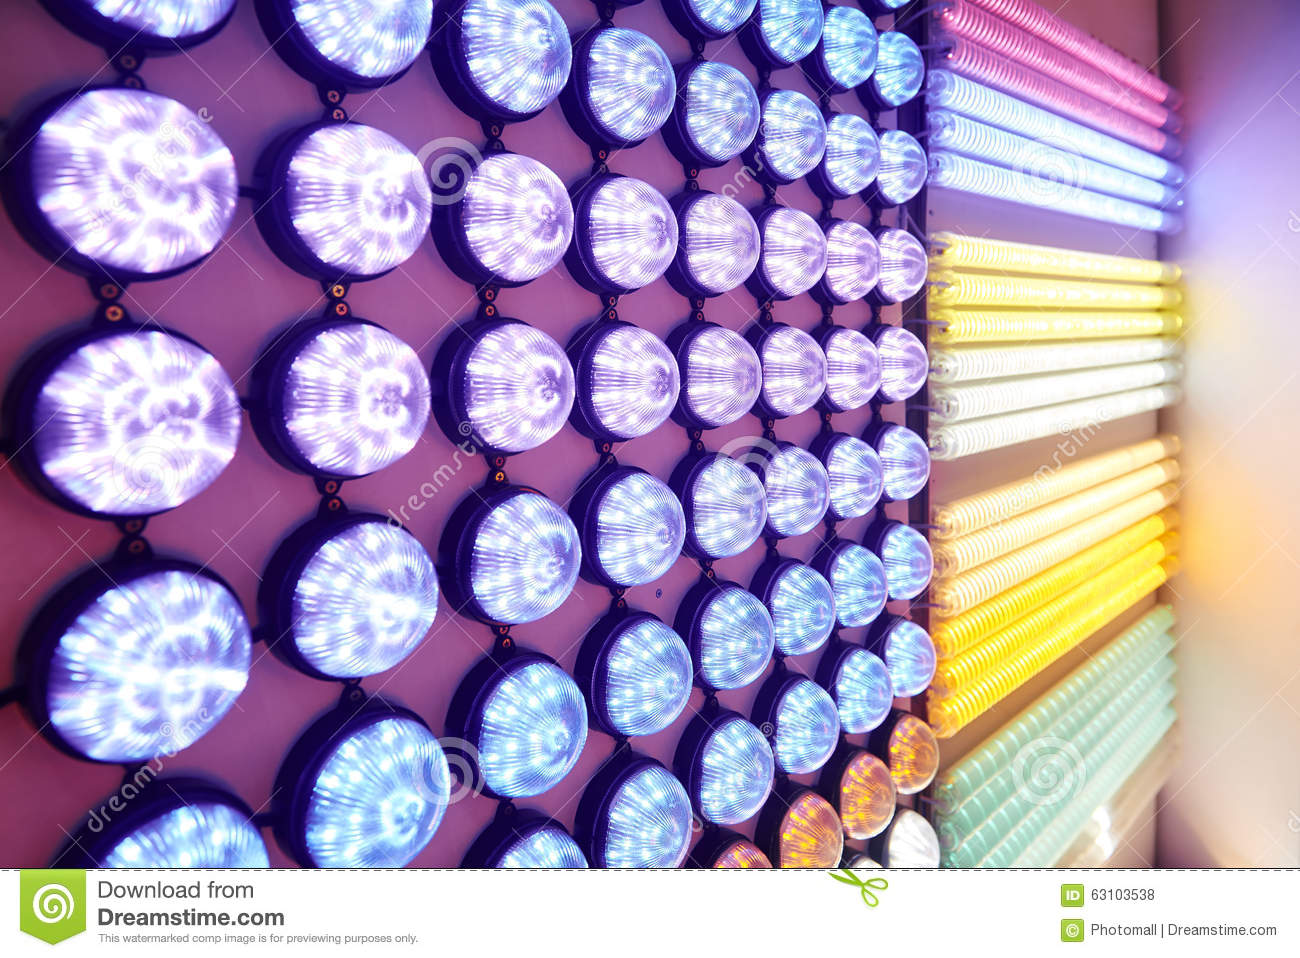 Led Wall China Led Lighting Bulbs Stock Photo Image Of Bulbs Exhibit 63103538